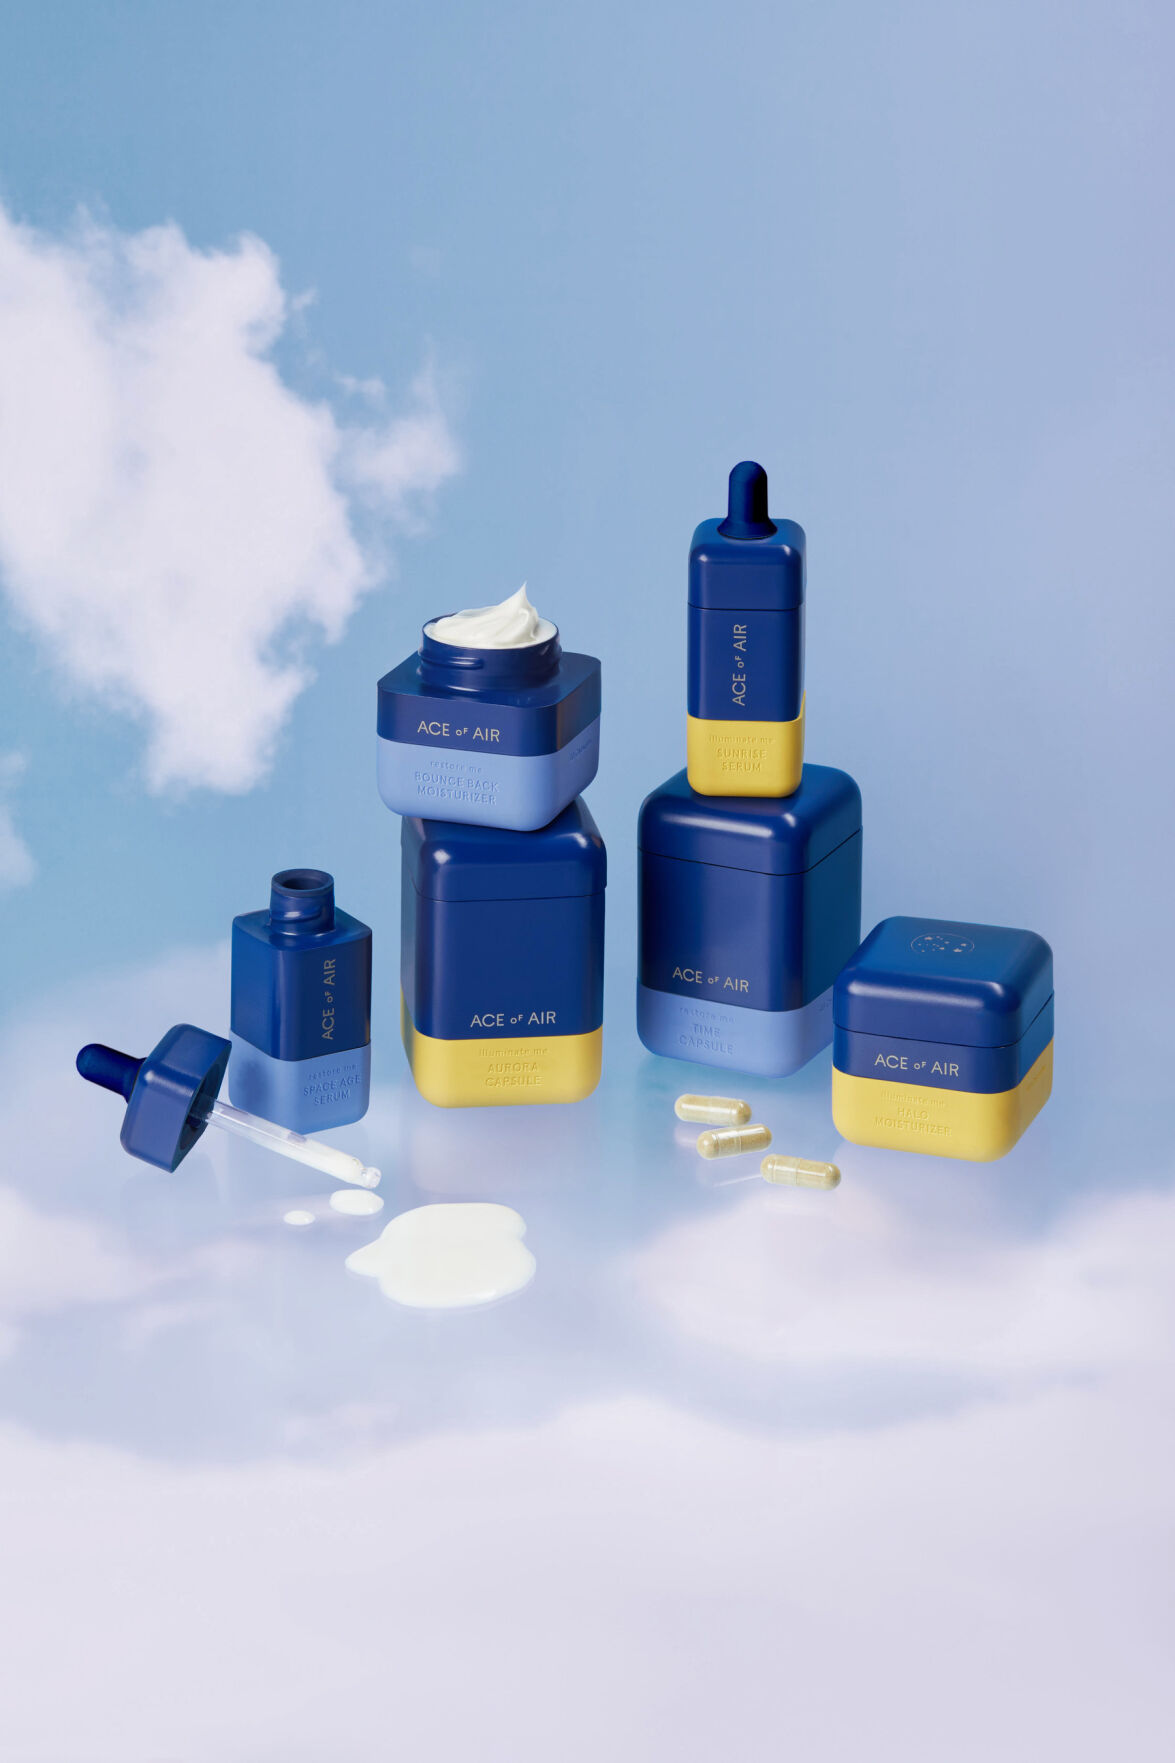 Ace of Air Product Lineup